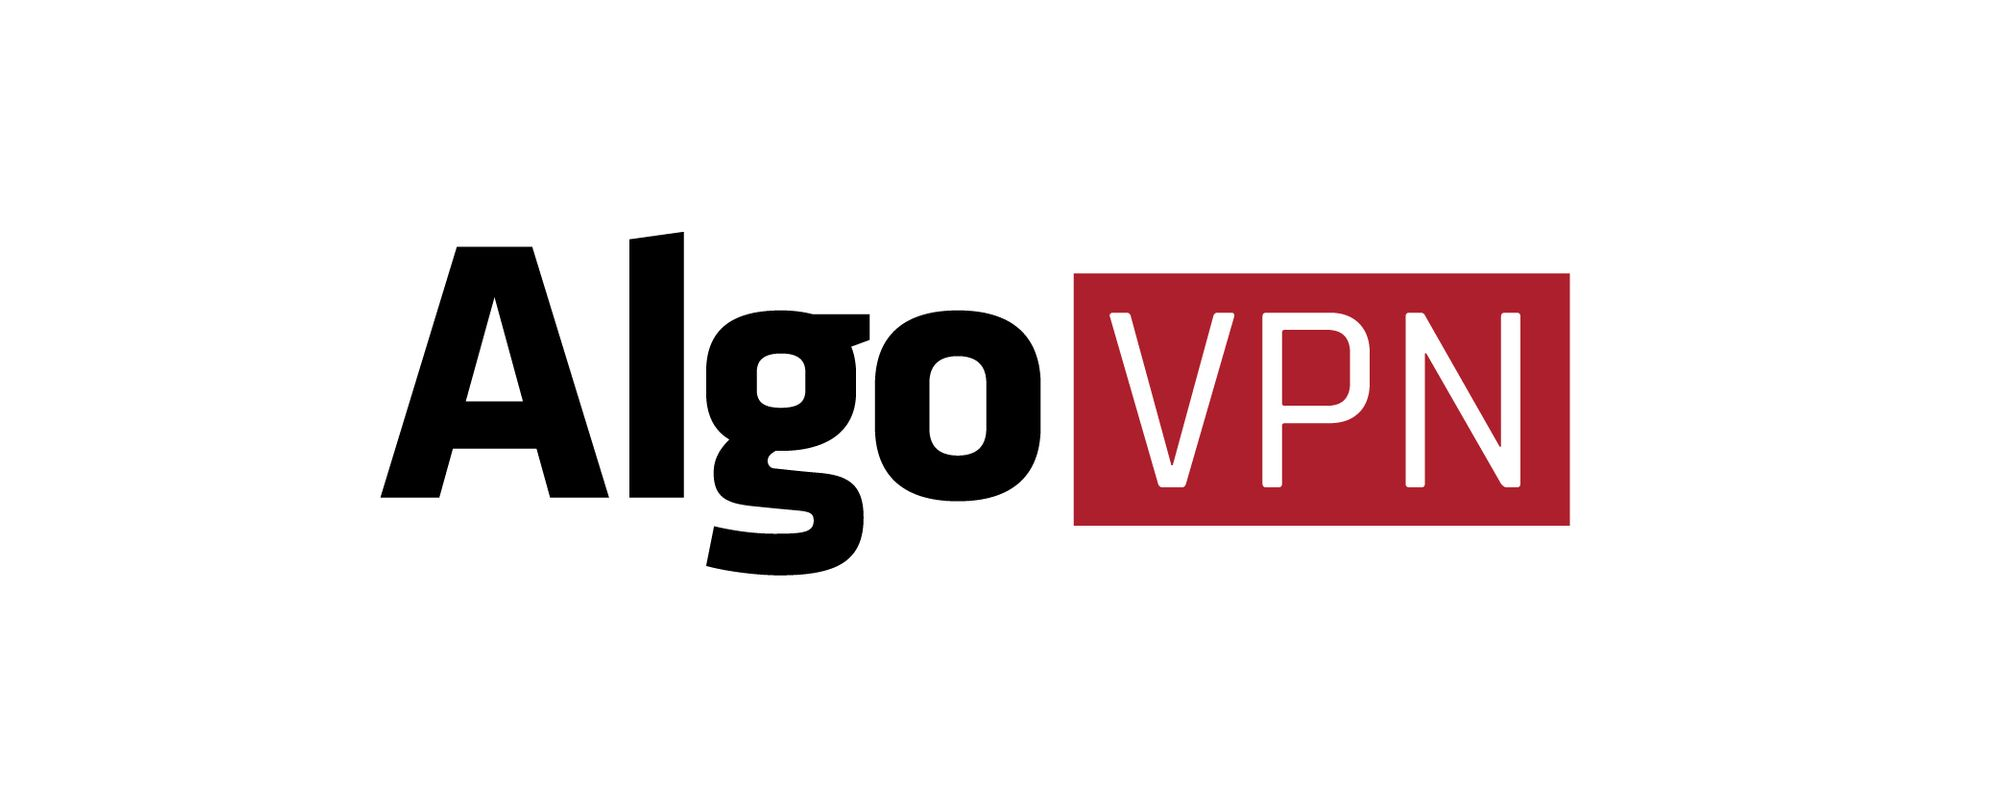 Algo VPN review: How does it compare to OpenVPN?